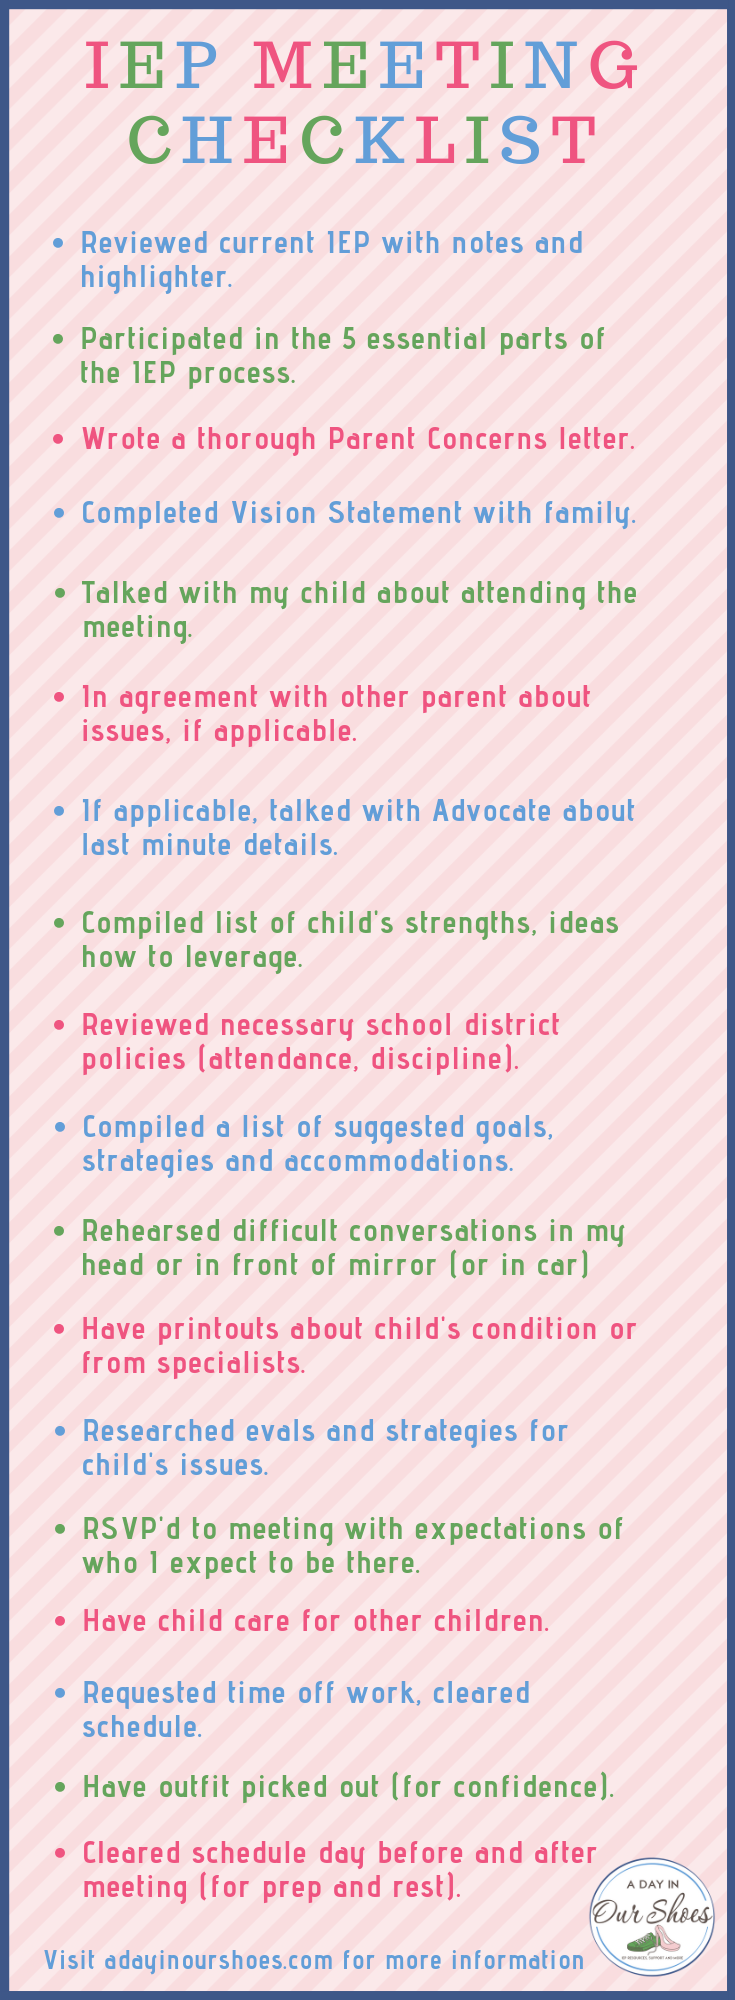 Are You Ready For Your Iep Meeting >> What Every Parent Ought To Know About Iep Meetings The Disability